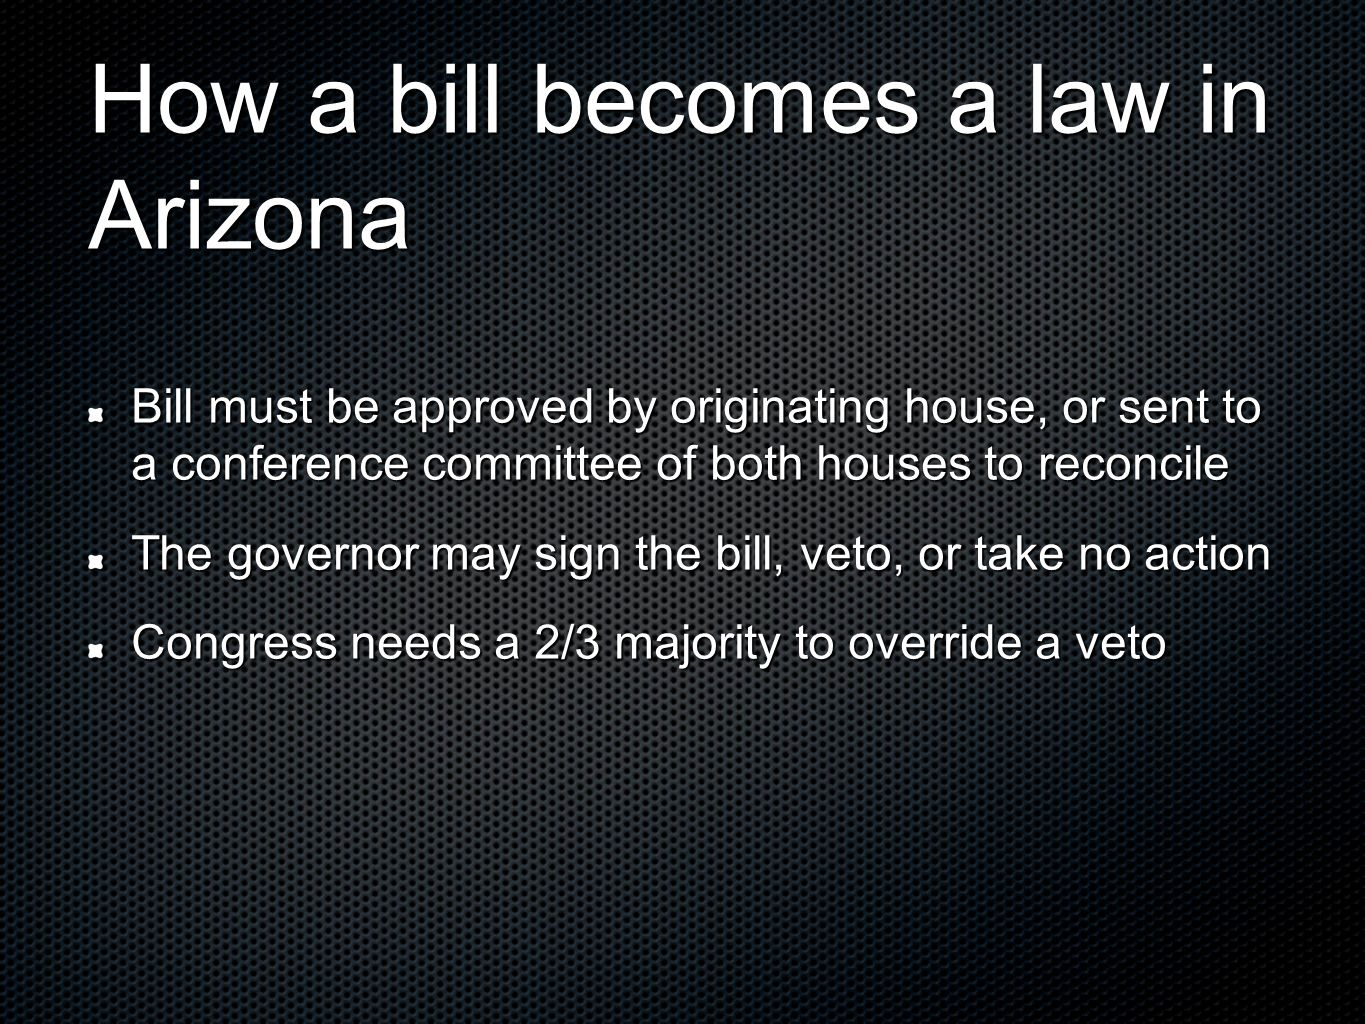 How a bill becomes a law in Arizona Bill must be approved by originating house, or sent to a conference committee of both houses to reconcile The governor may sign the bill, veto, or take no action Congress needs a 2/3 majority to override a veto